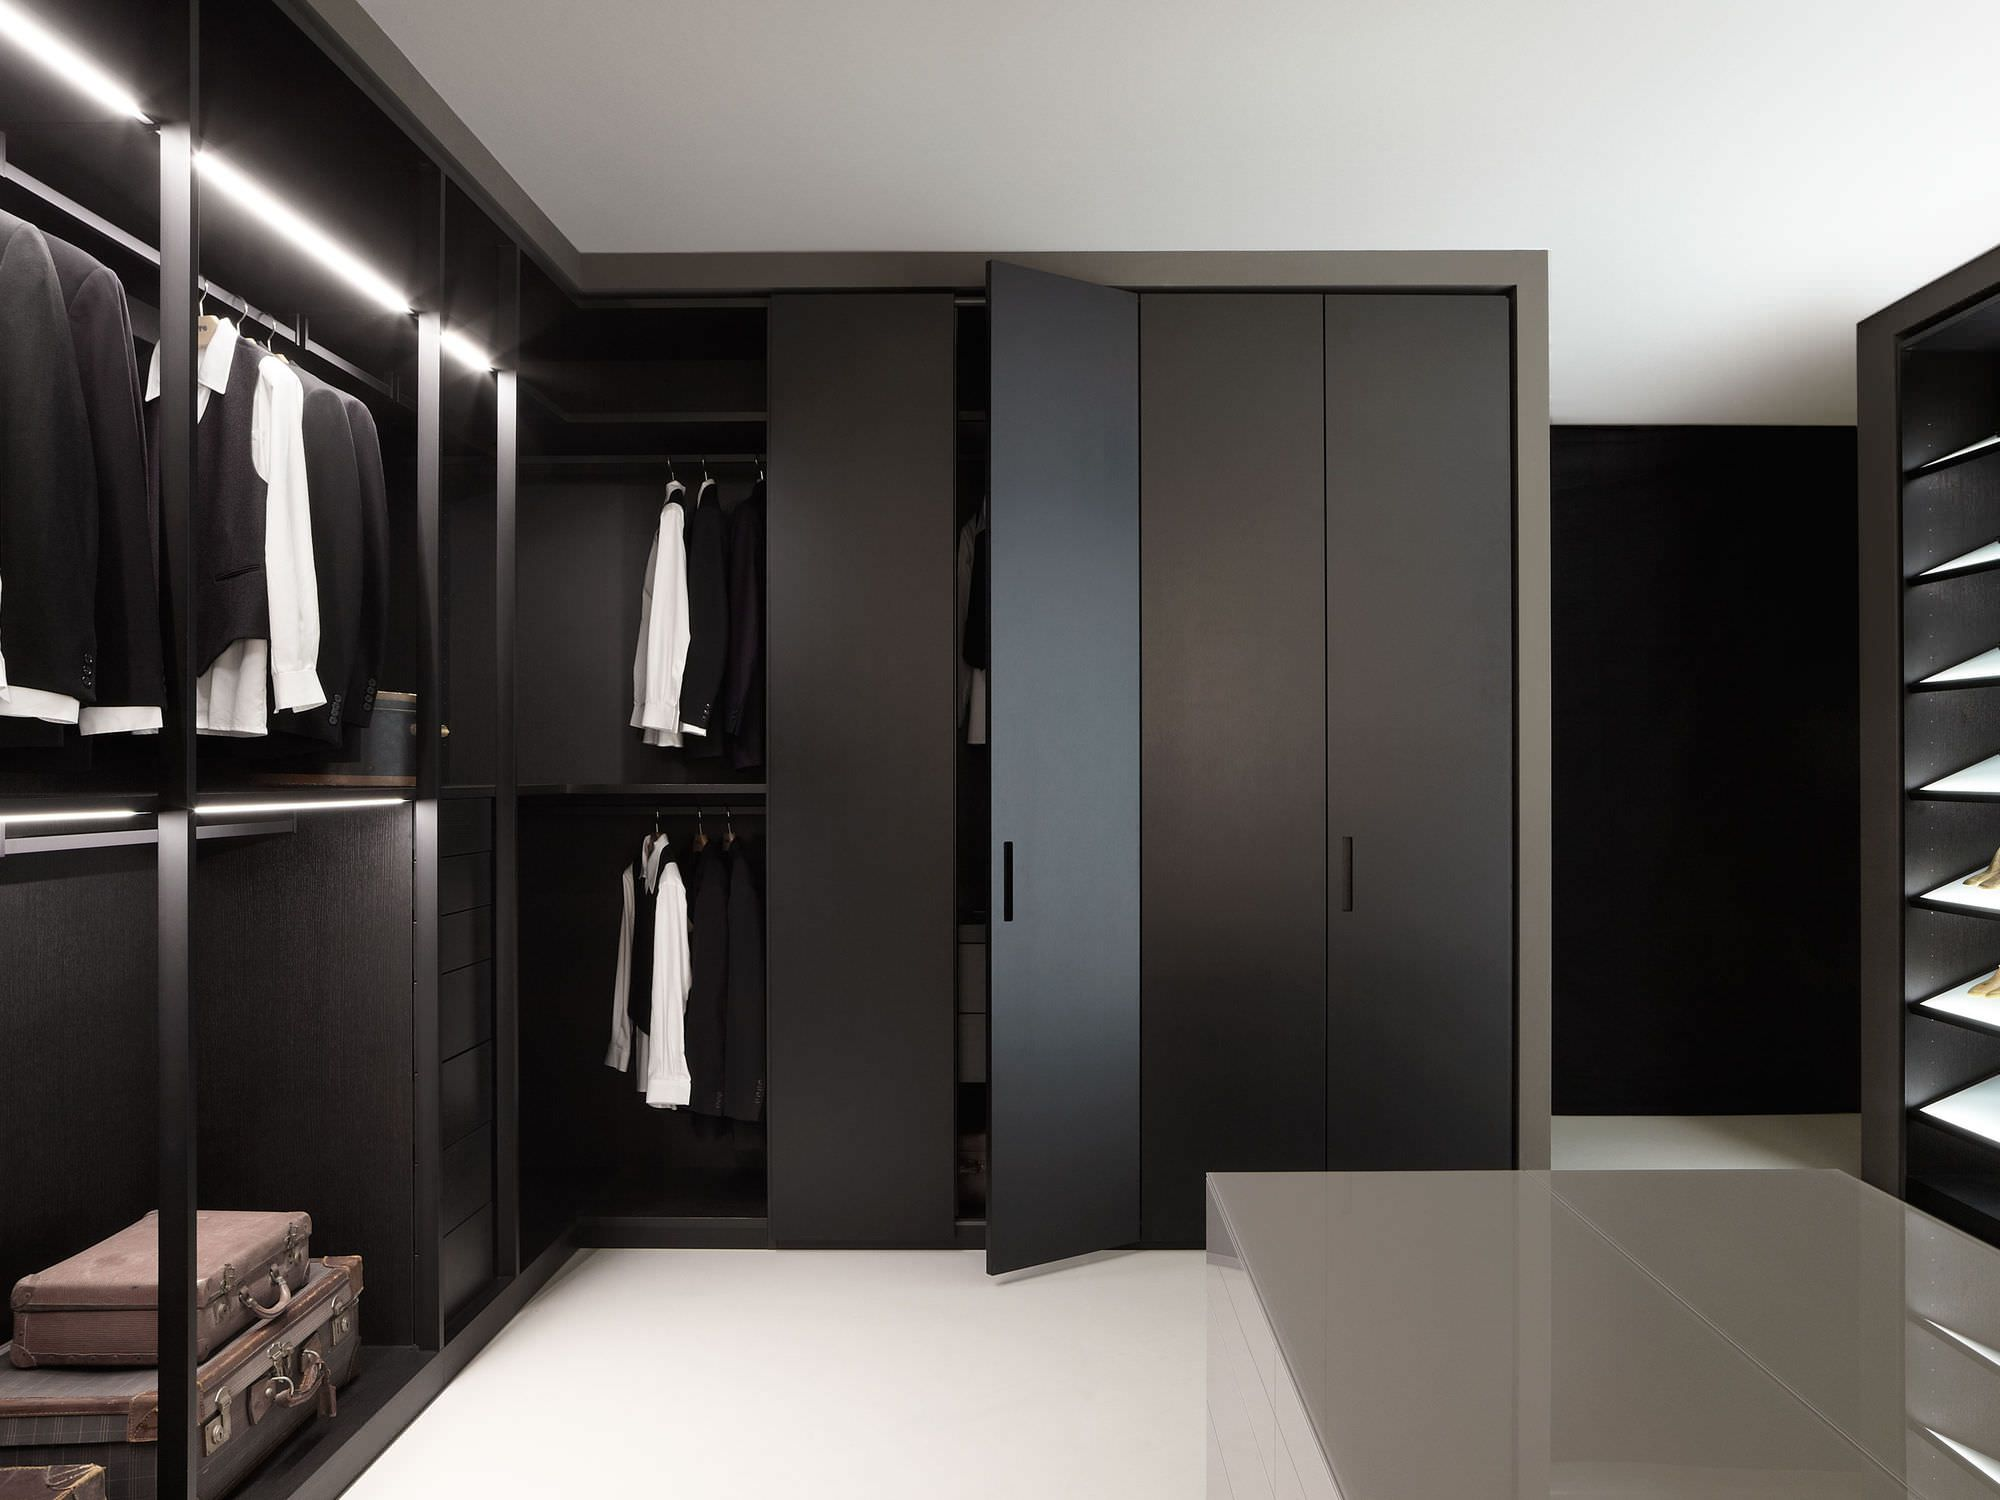 25 Best Modern Storage & Closets Designs Closet designs